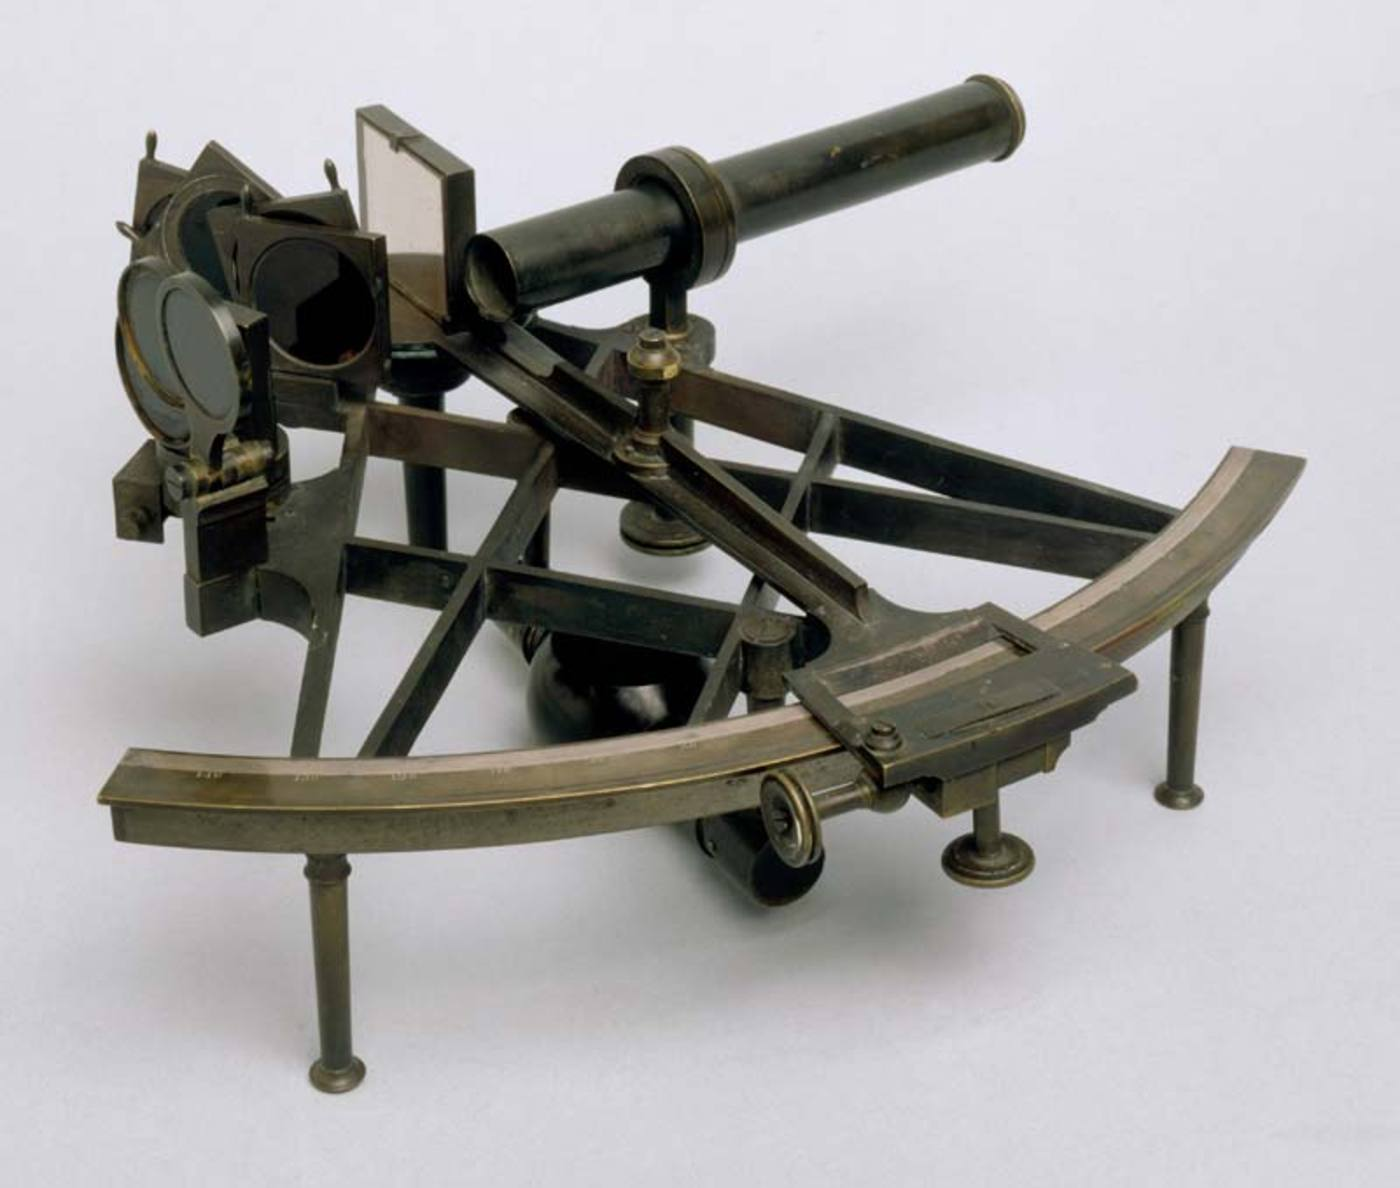 Sextant made by Watkins